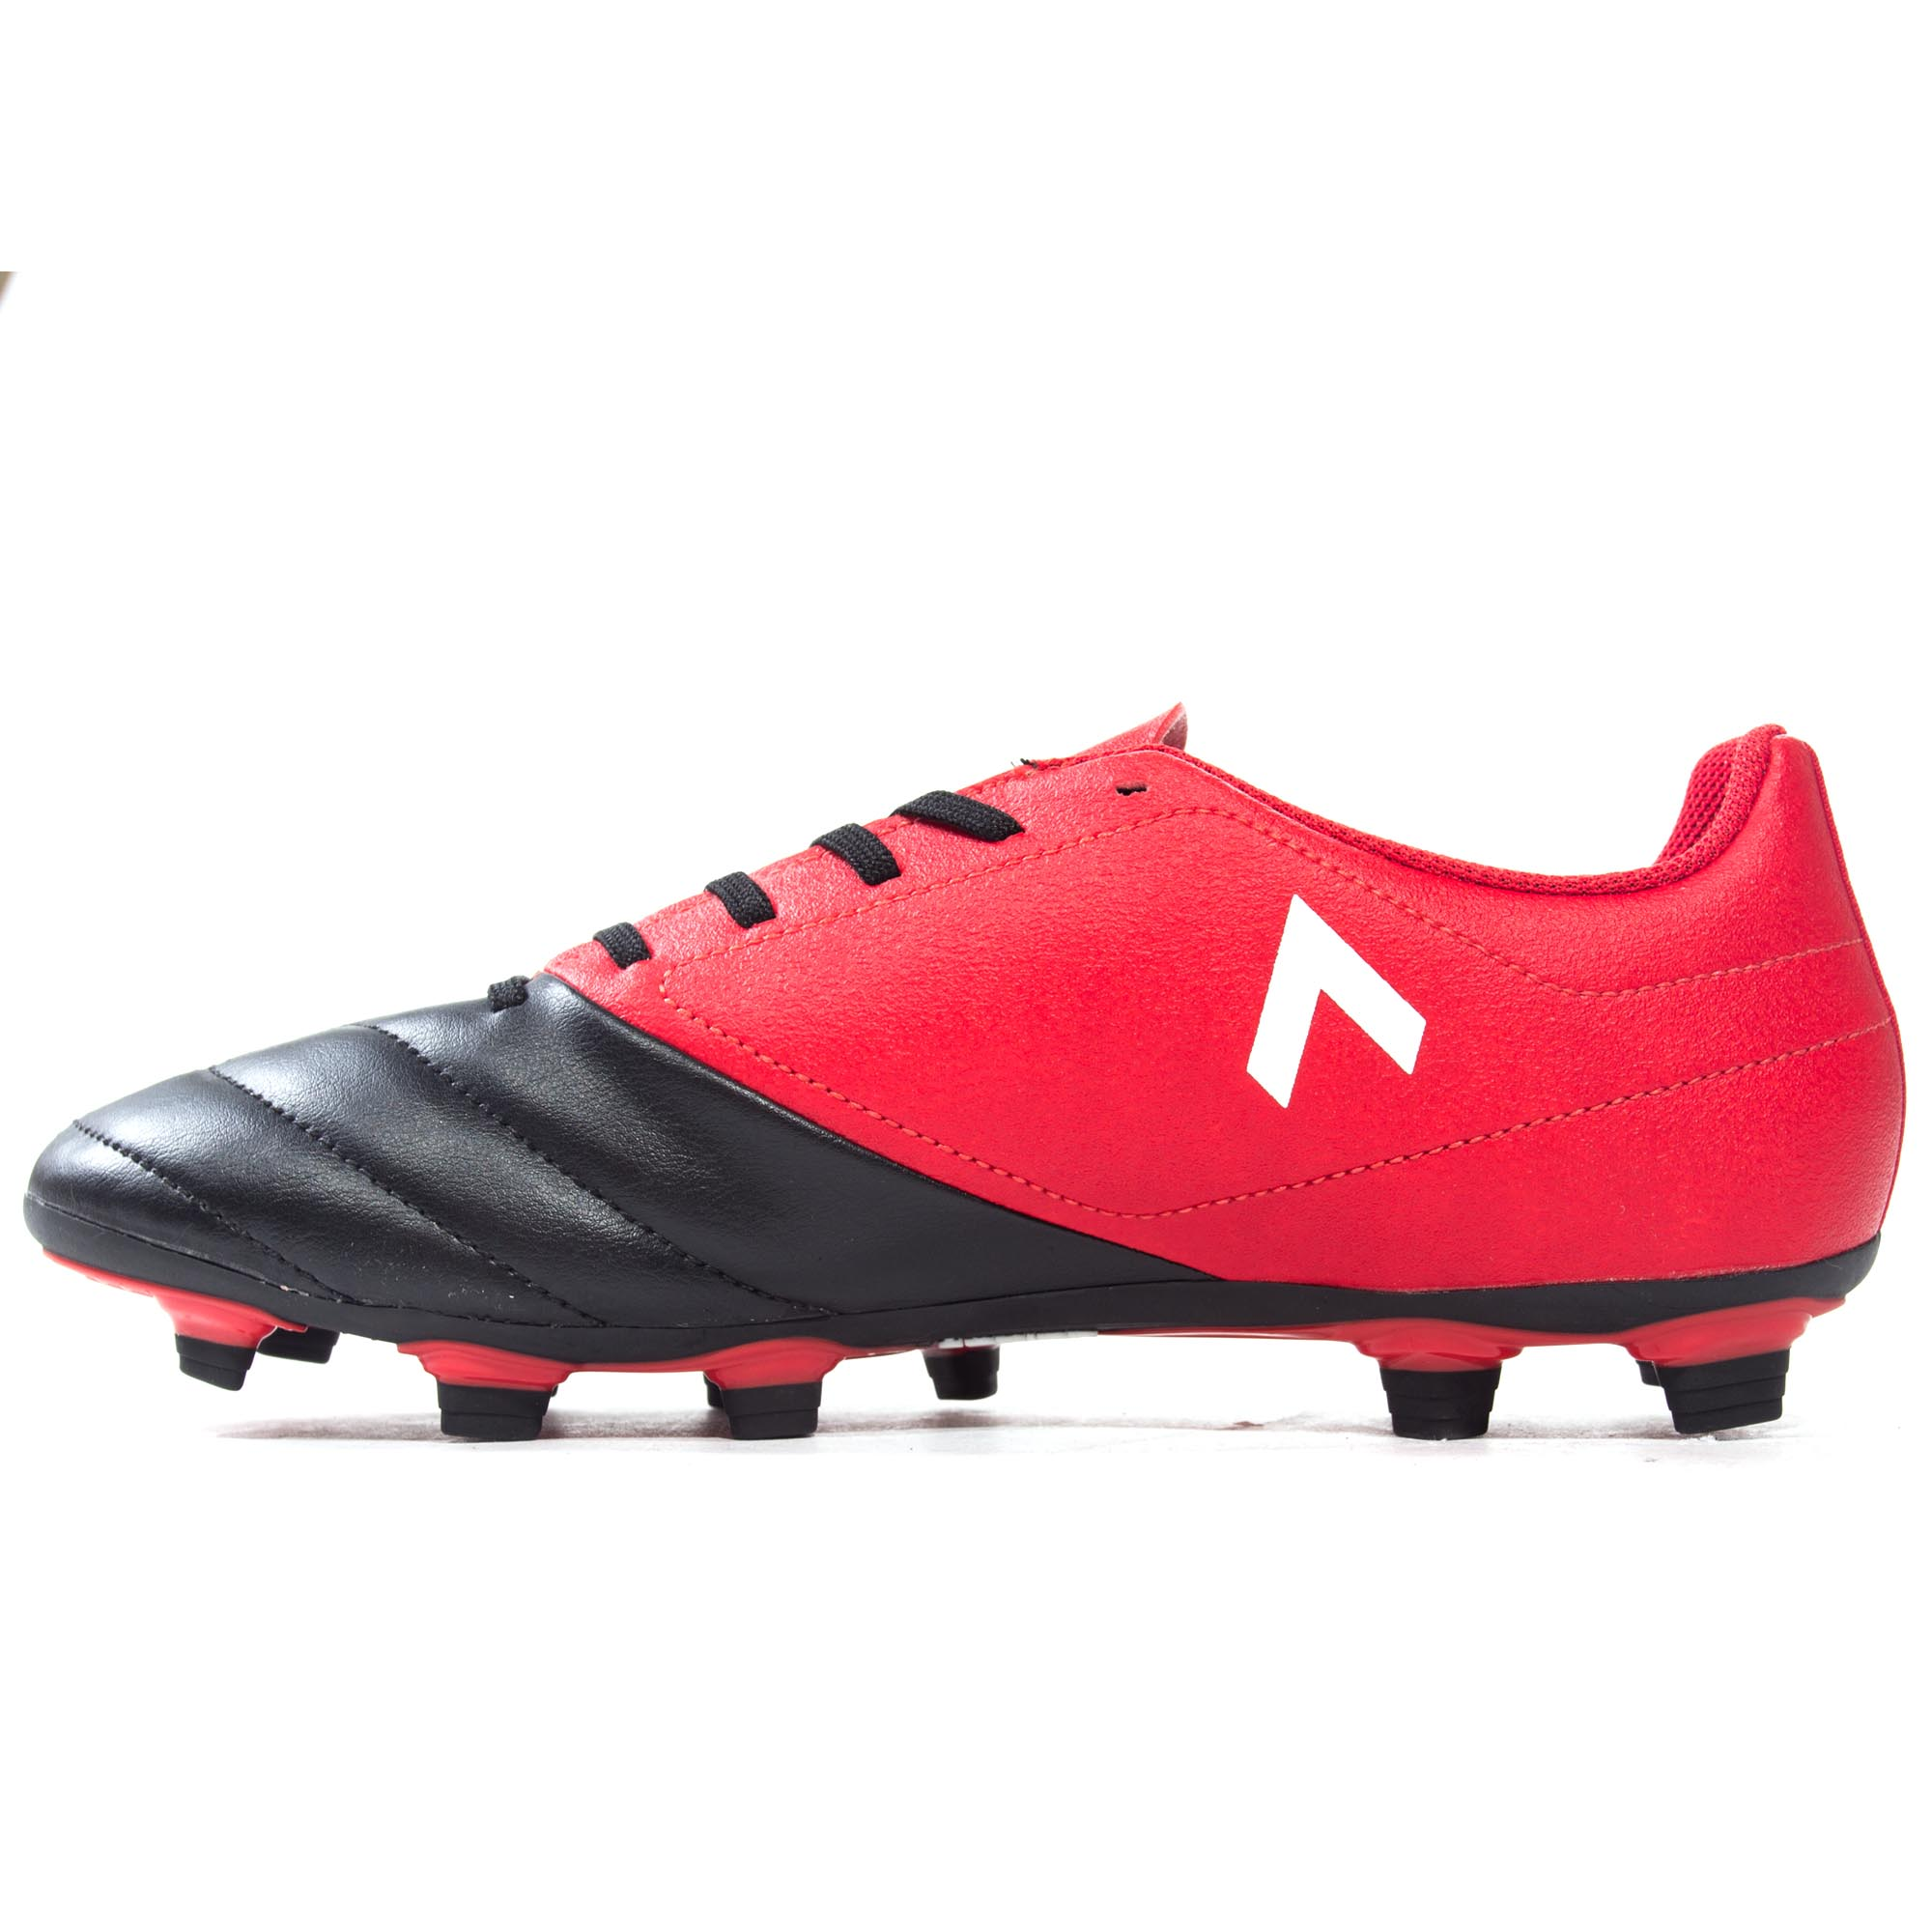 ADIDAS-ACE-17-4-FG-Firm-Ground-pour-homme-Football-Boot-Noir-Rouge miniature 8